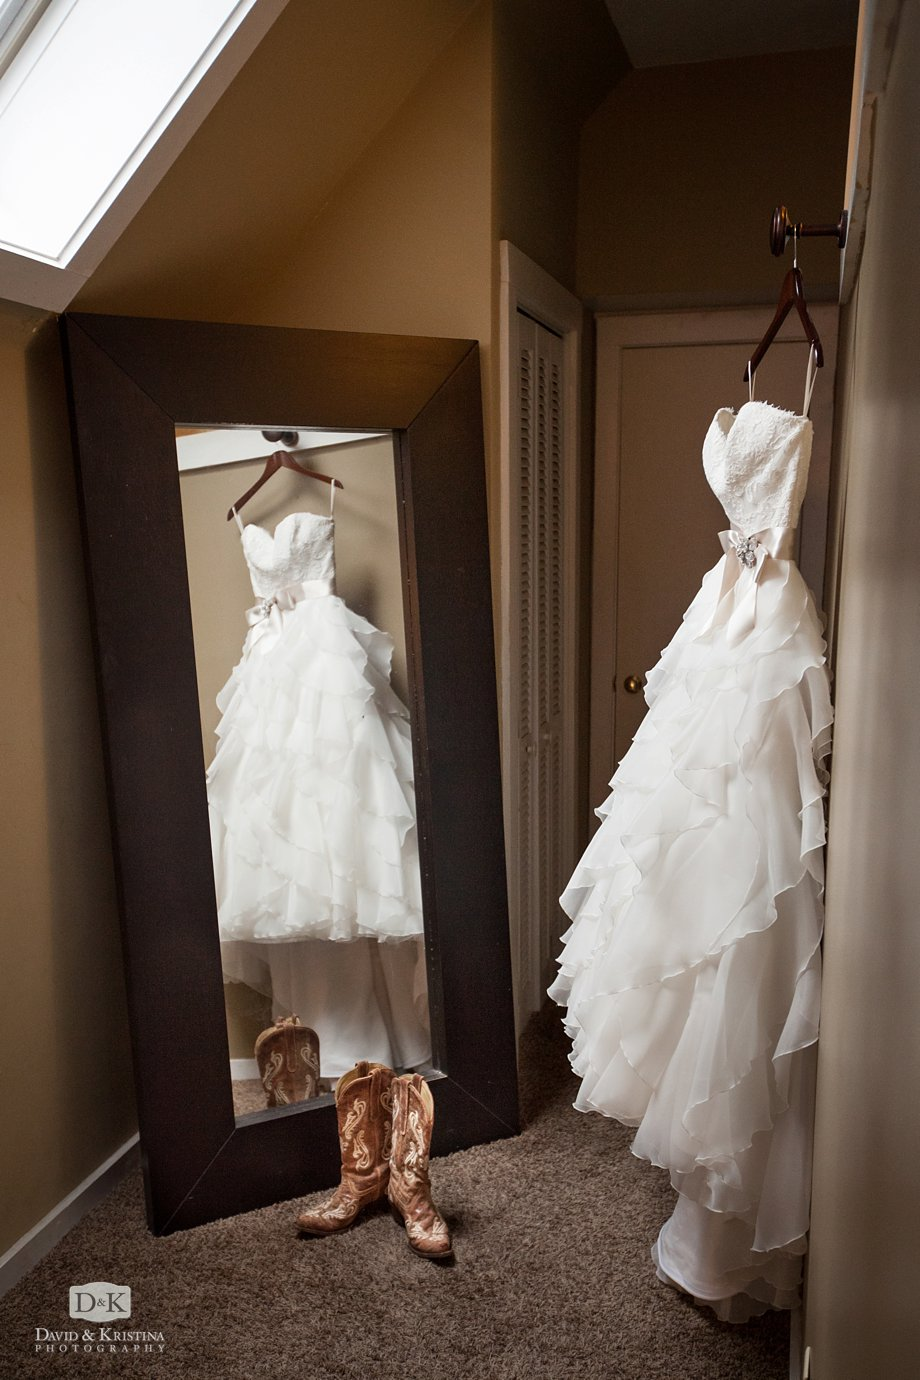 wedding dress and boots in front of mirror